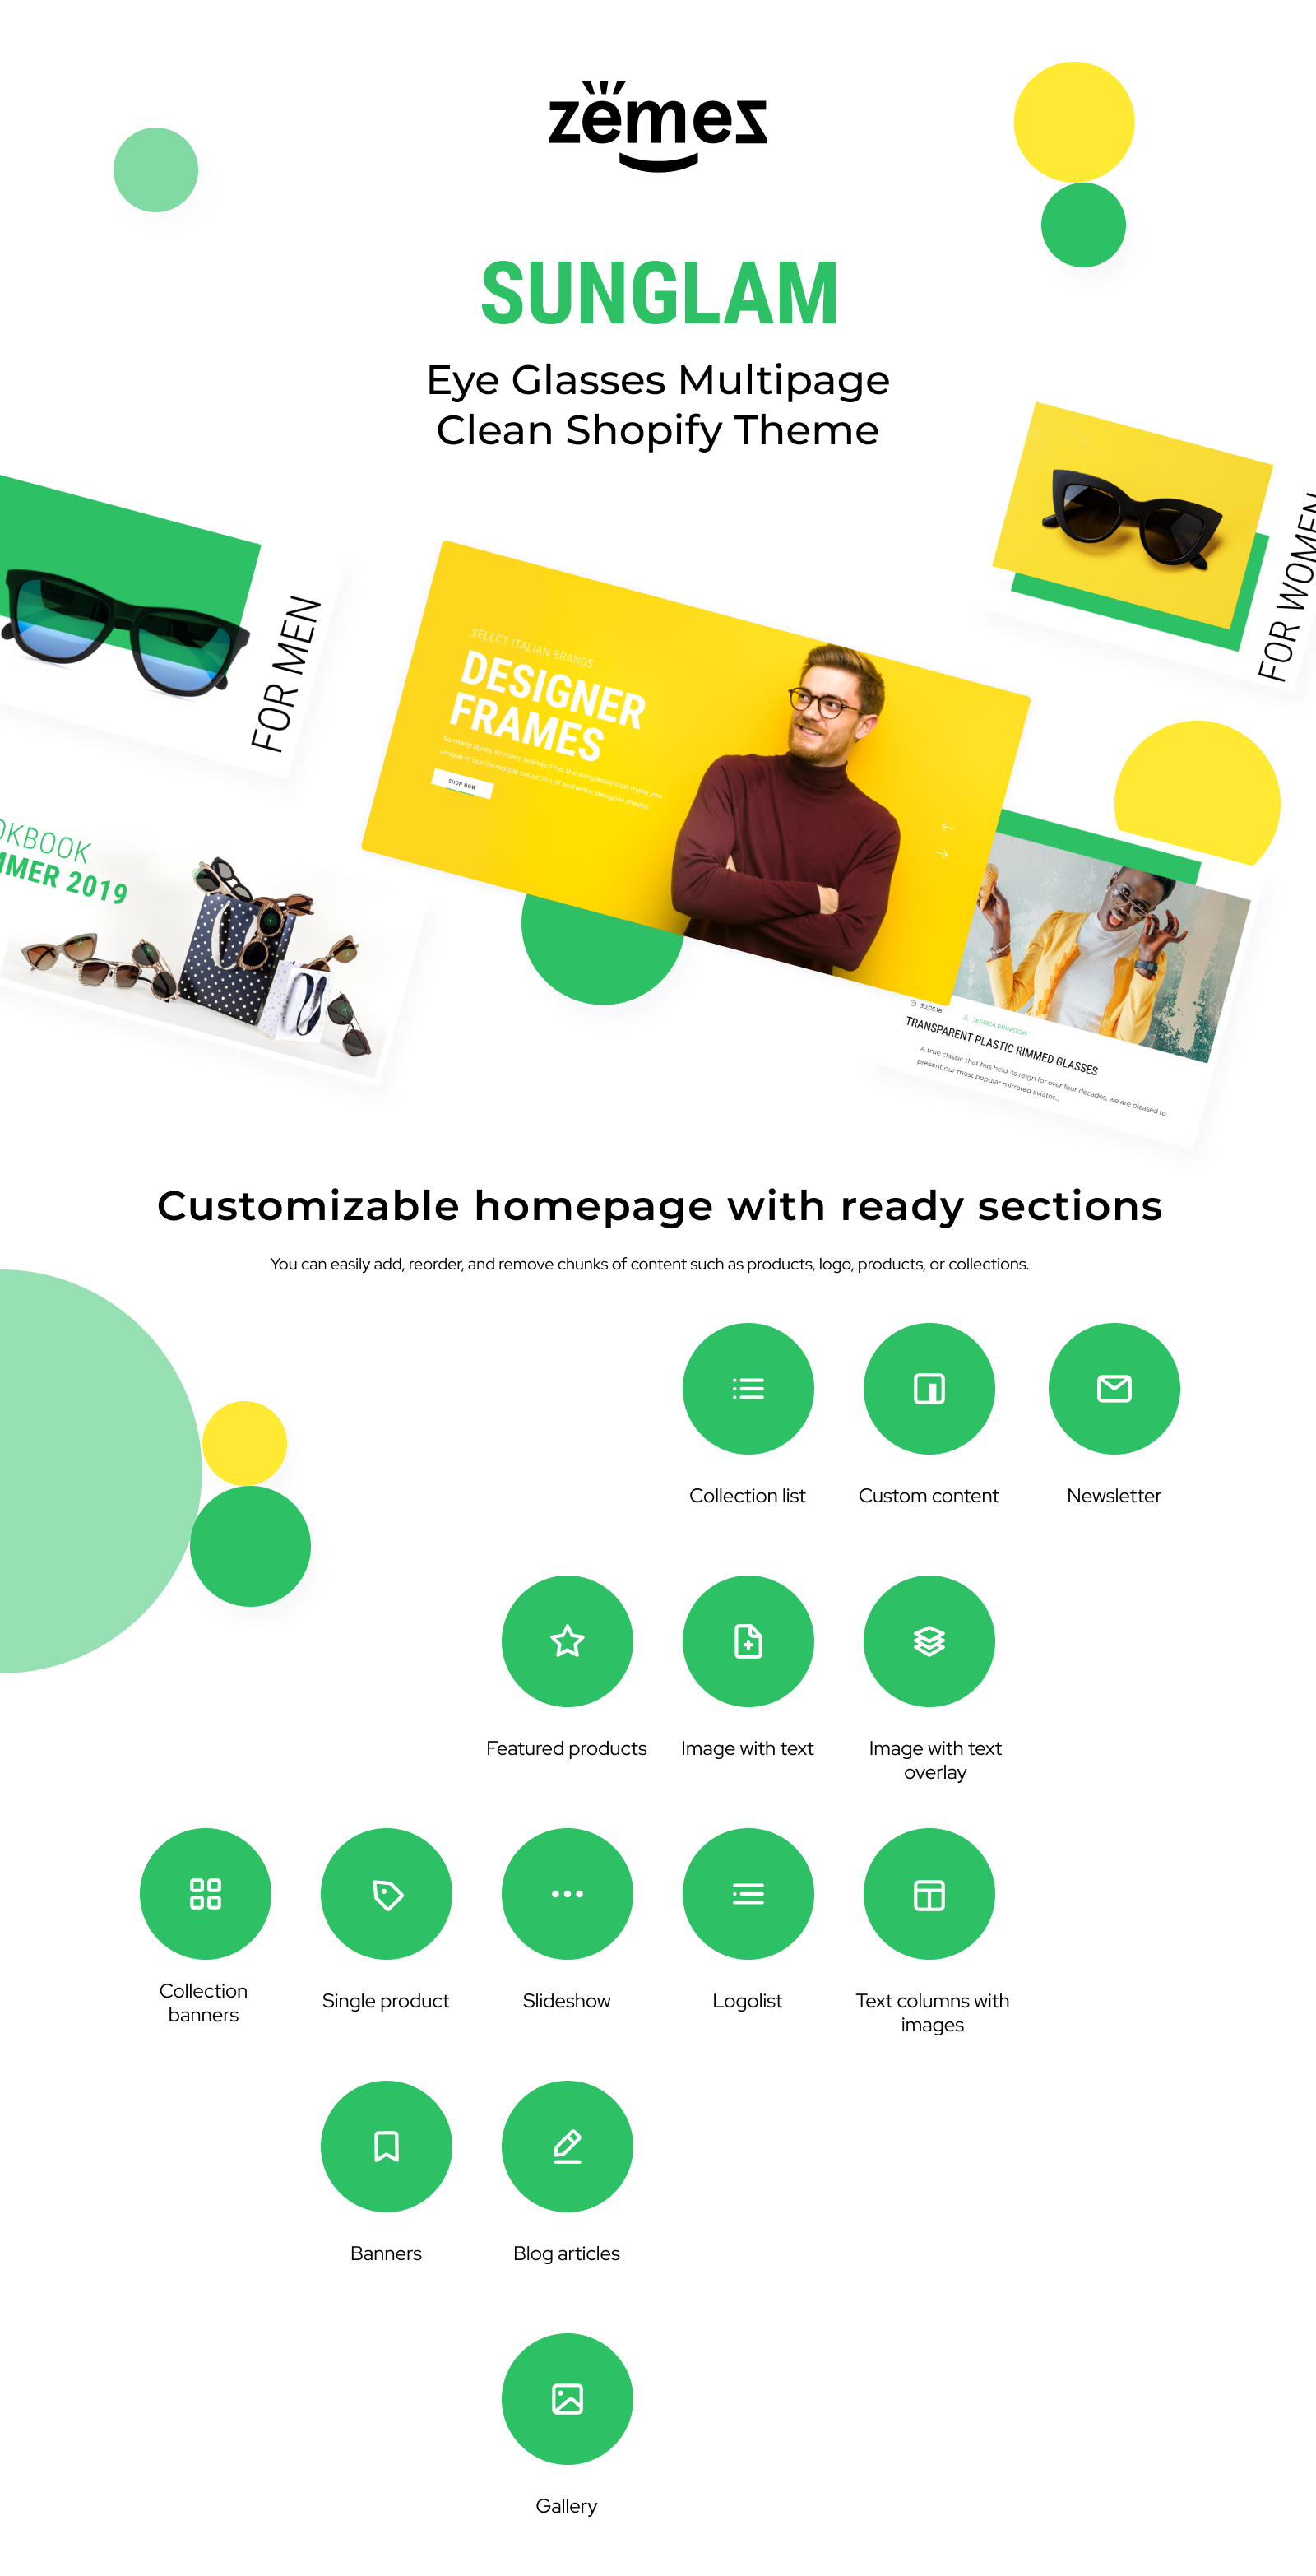 Sunglam - Eye Glasses Multipage Clean Shopify Theme